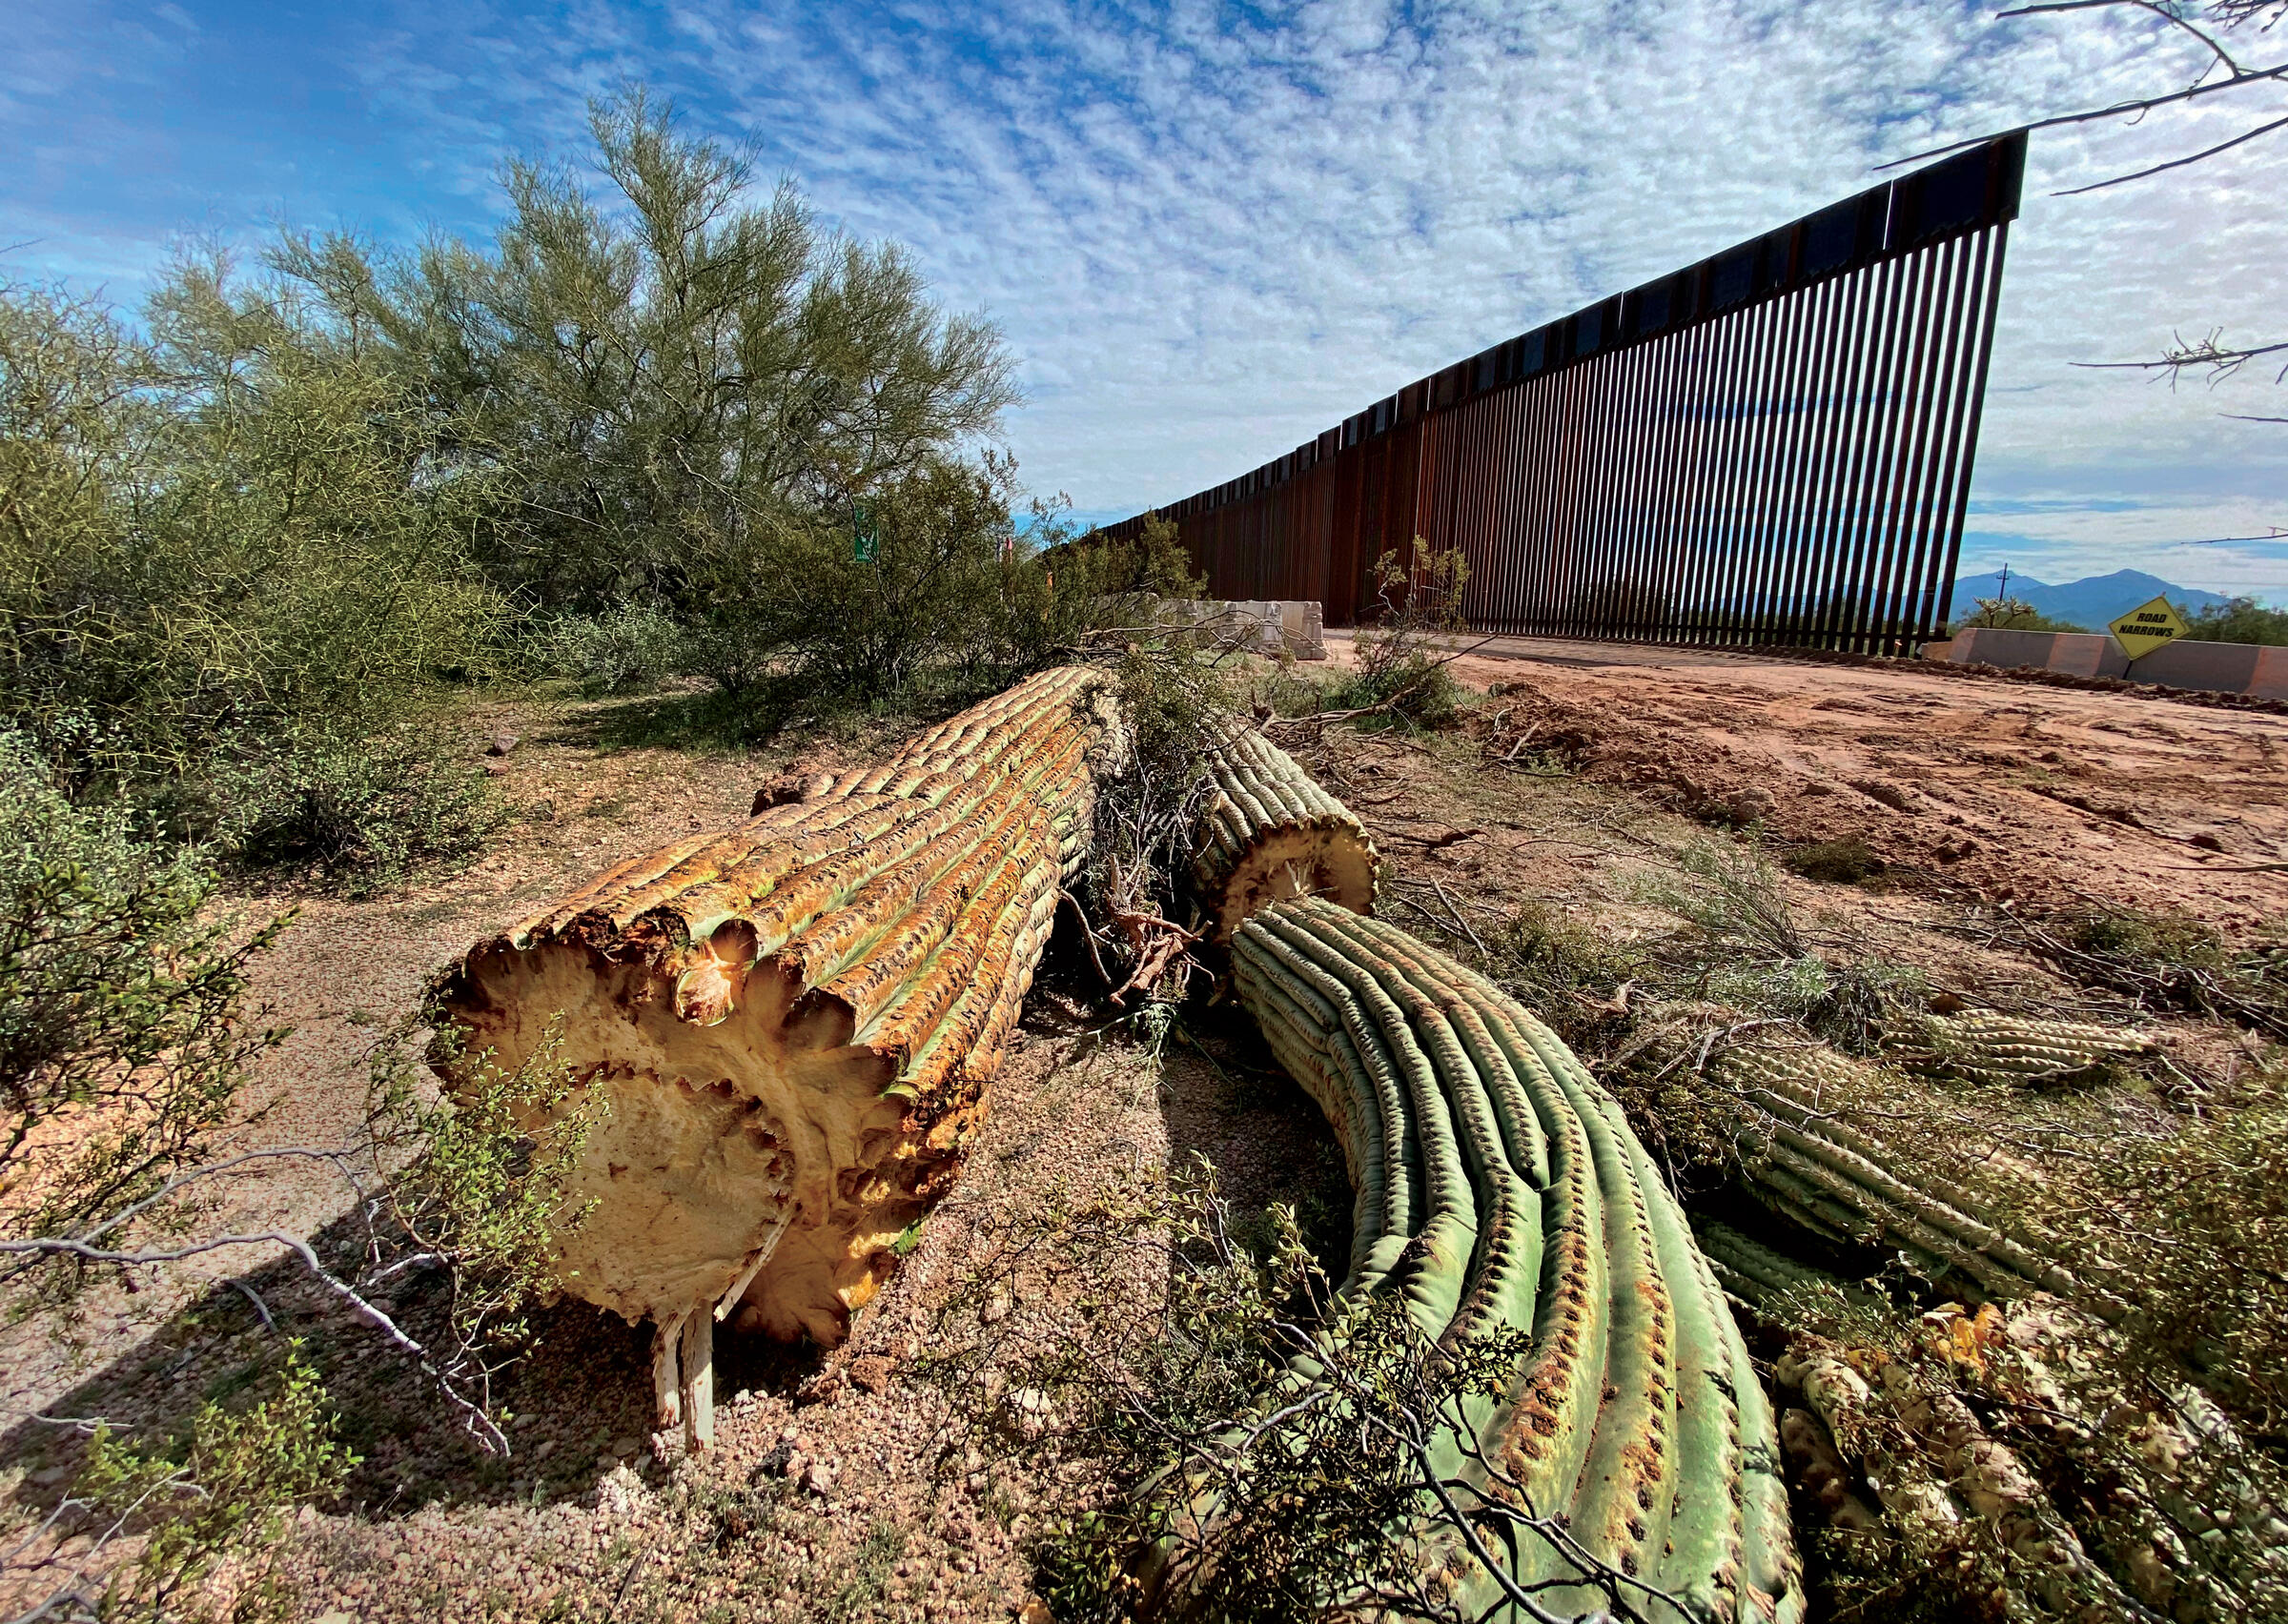 One of the saguaro cacti destroyed at Organ Pipe Cactus National Monument to make way for the border wall. Laiken Jordahl